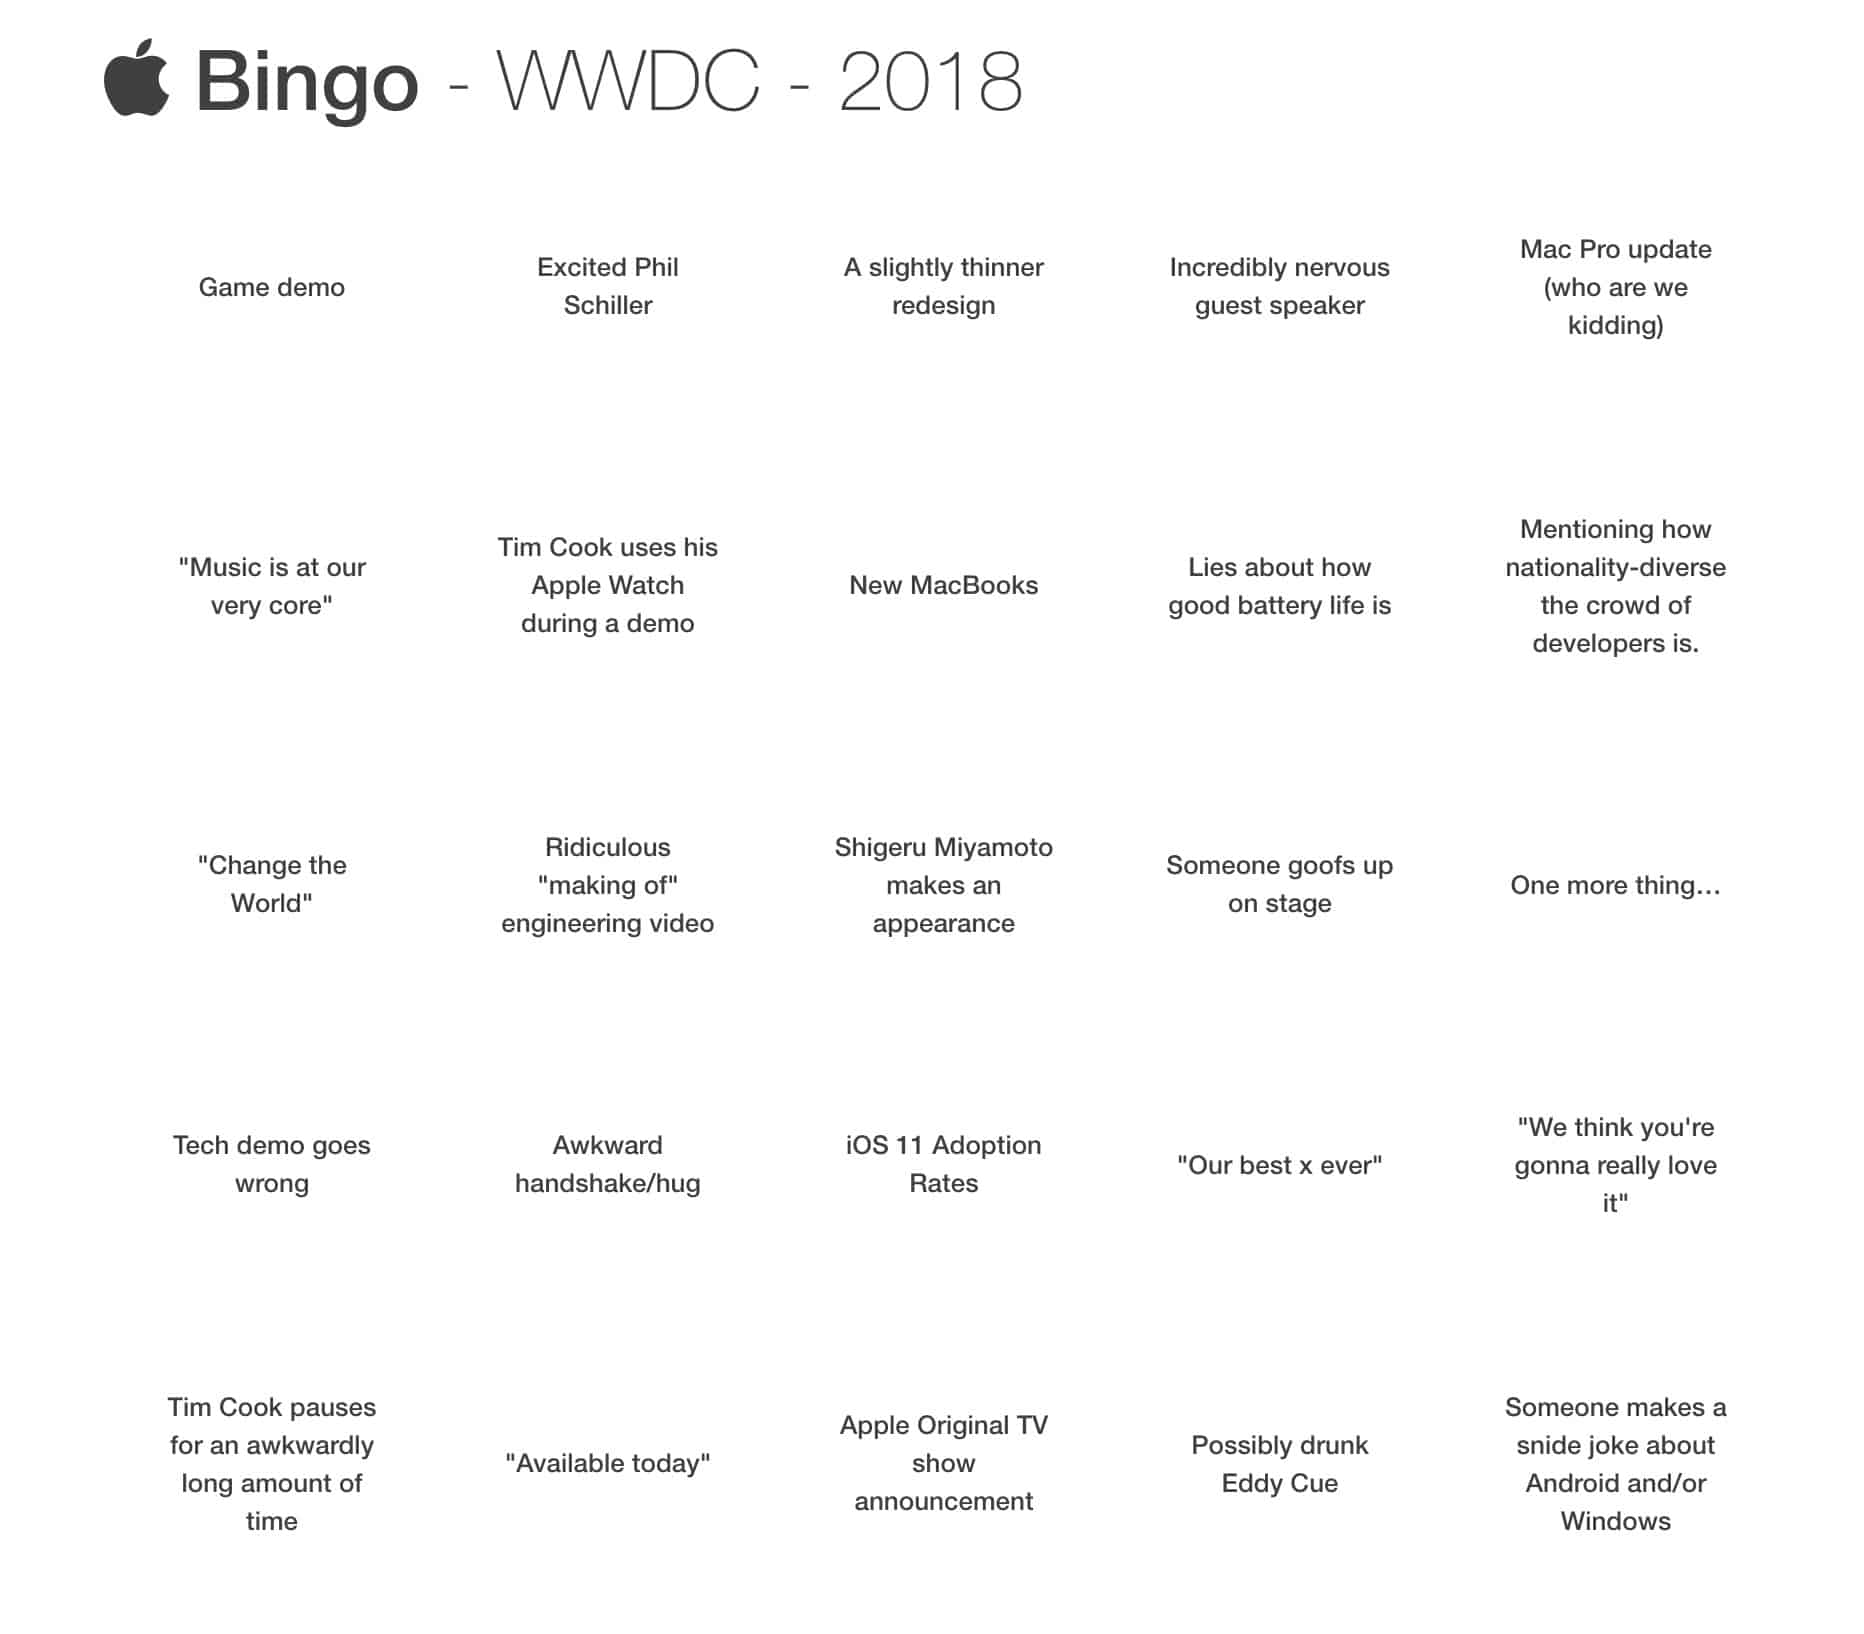 Get ready to win WWDC 2018 with keynote bingo card